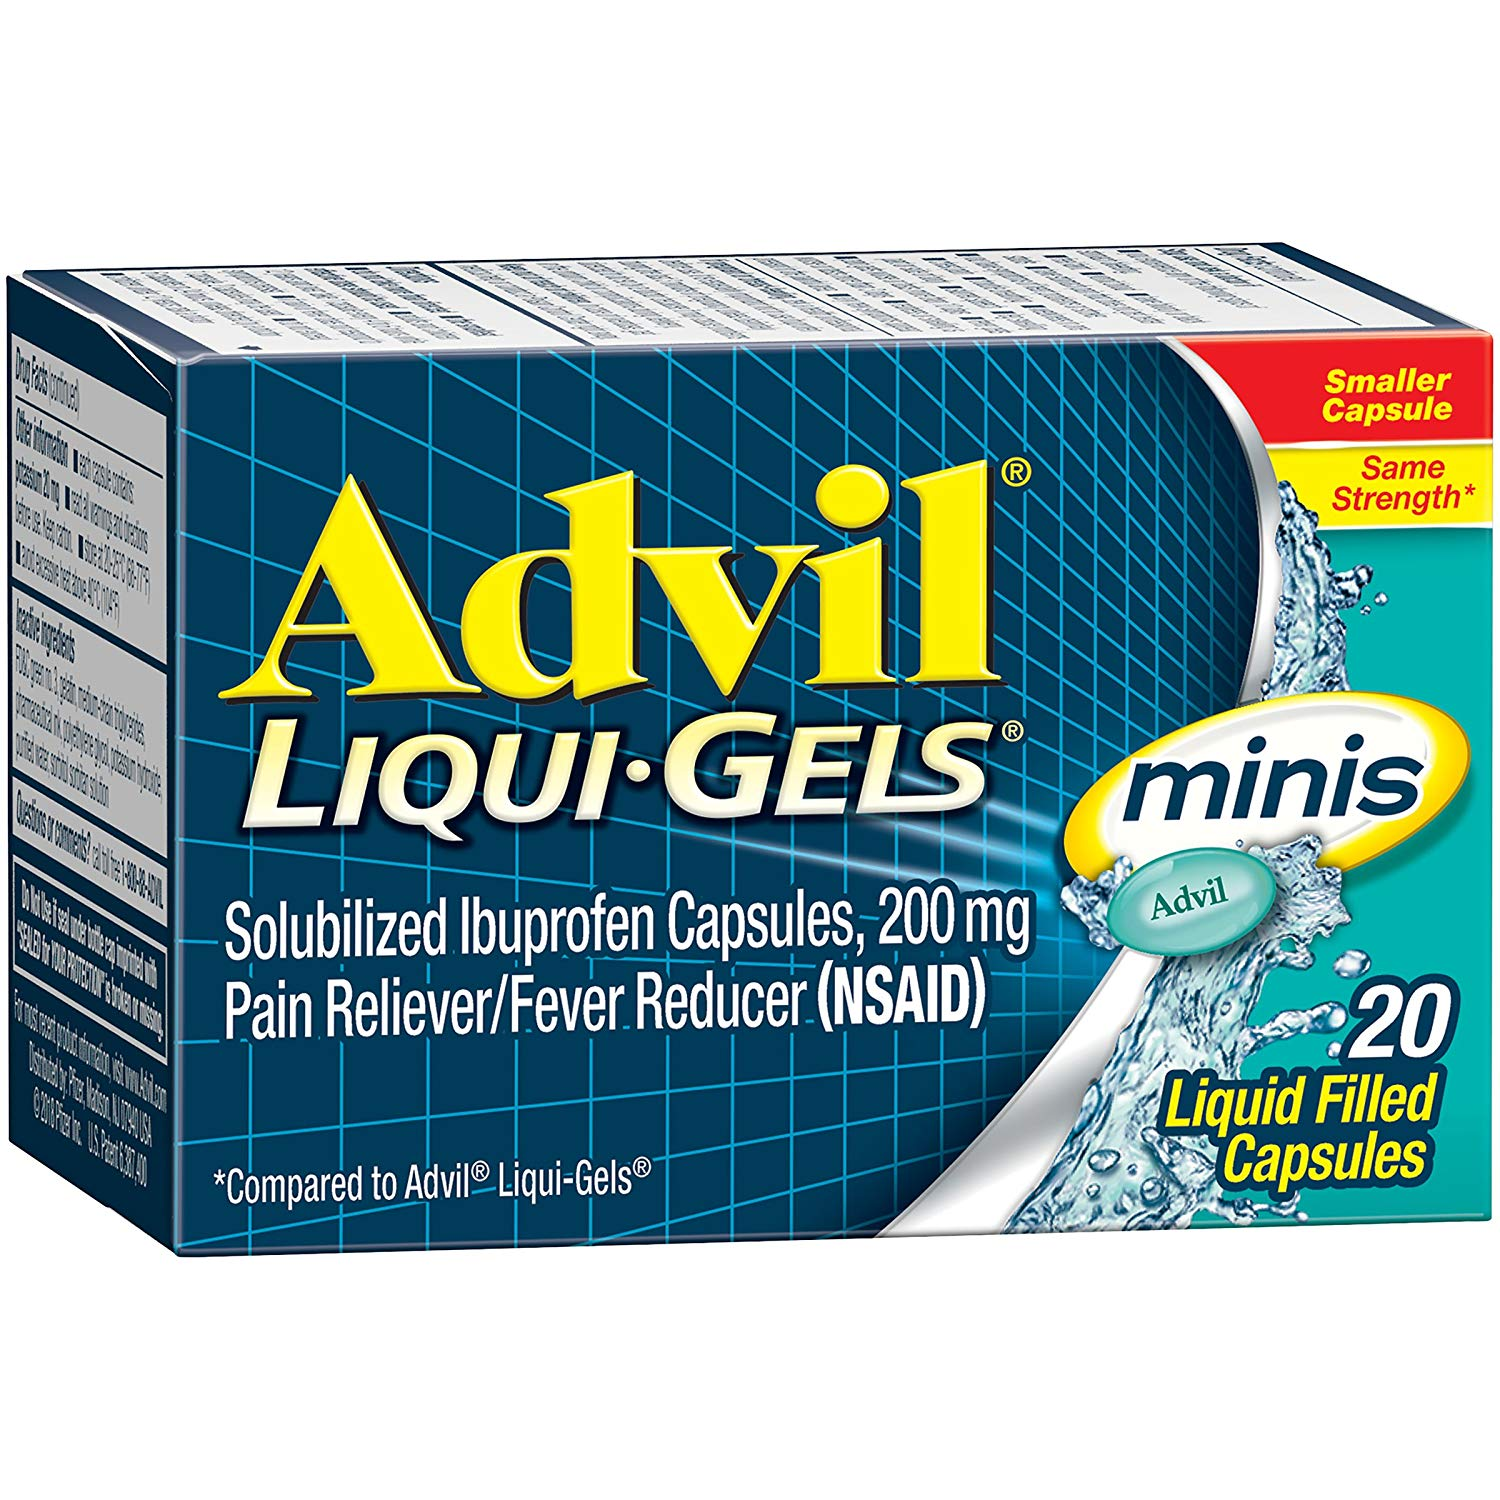 Advil Liqui-Gels Minis - 20 Liquid Filled Capsules